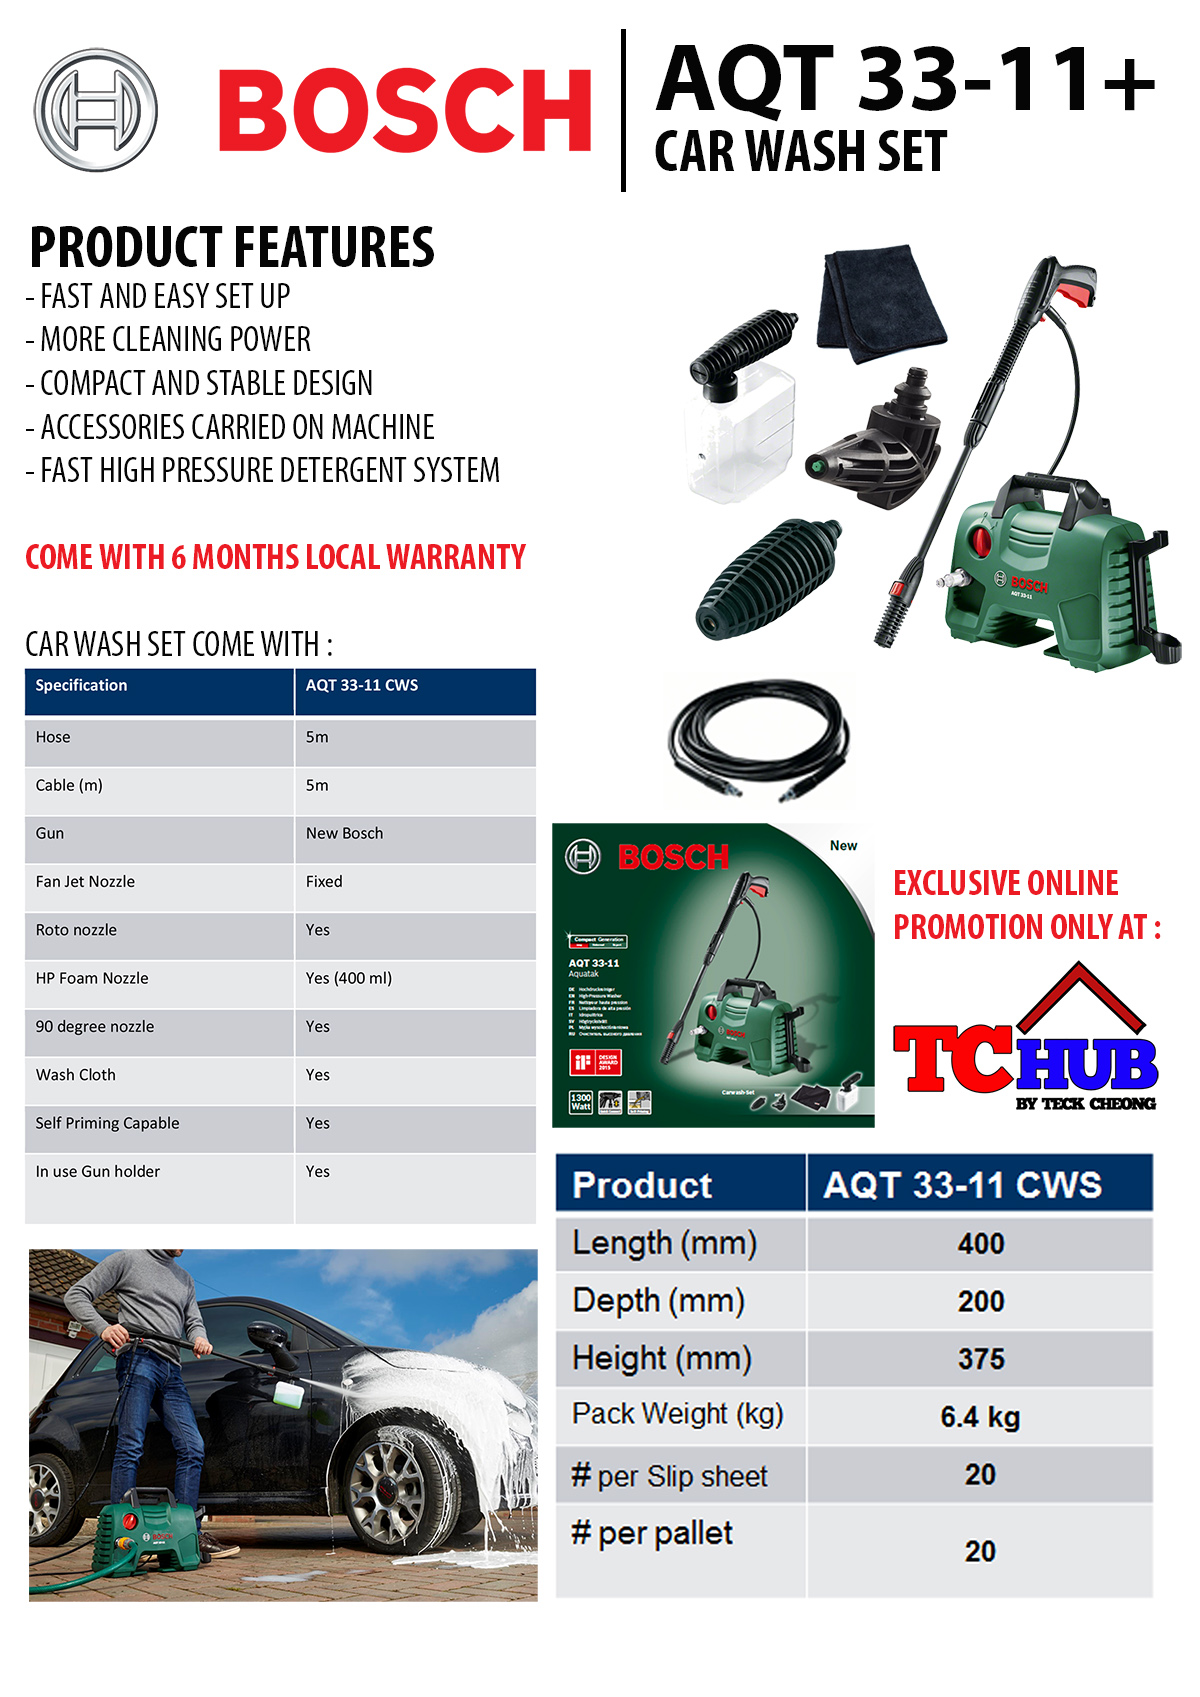 Buy Bosch Aqt 33 11 High Pressure Water Cleaner Suitable For Home Washer Aquatak Aqt33 Highlights